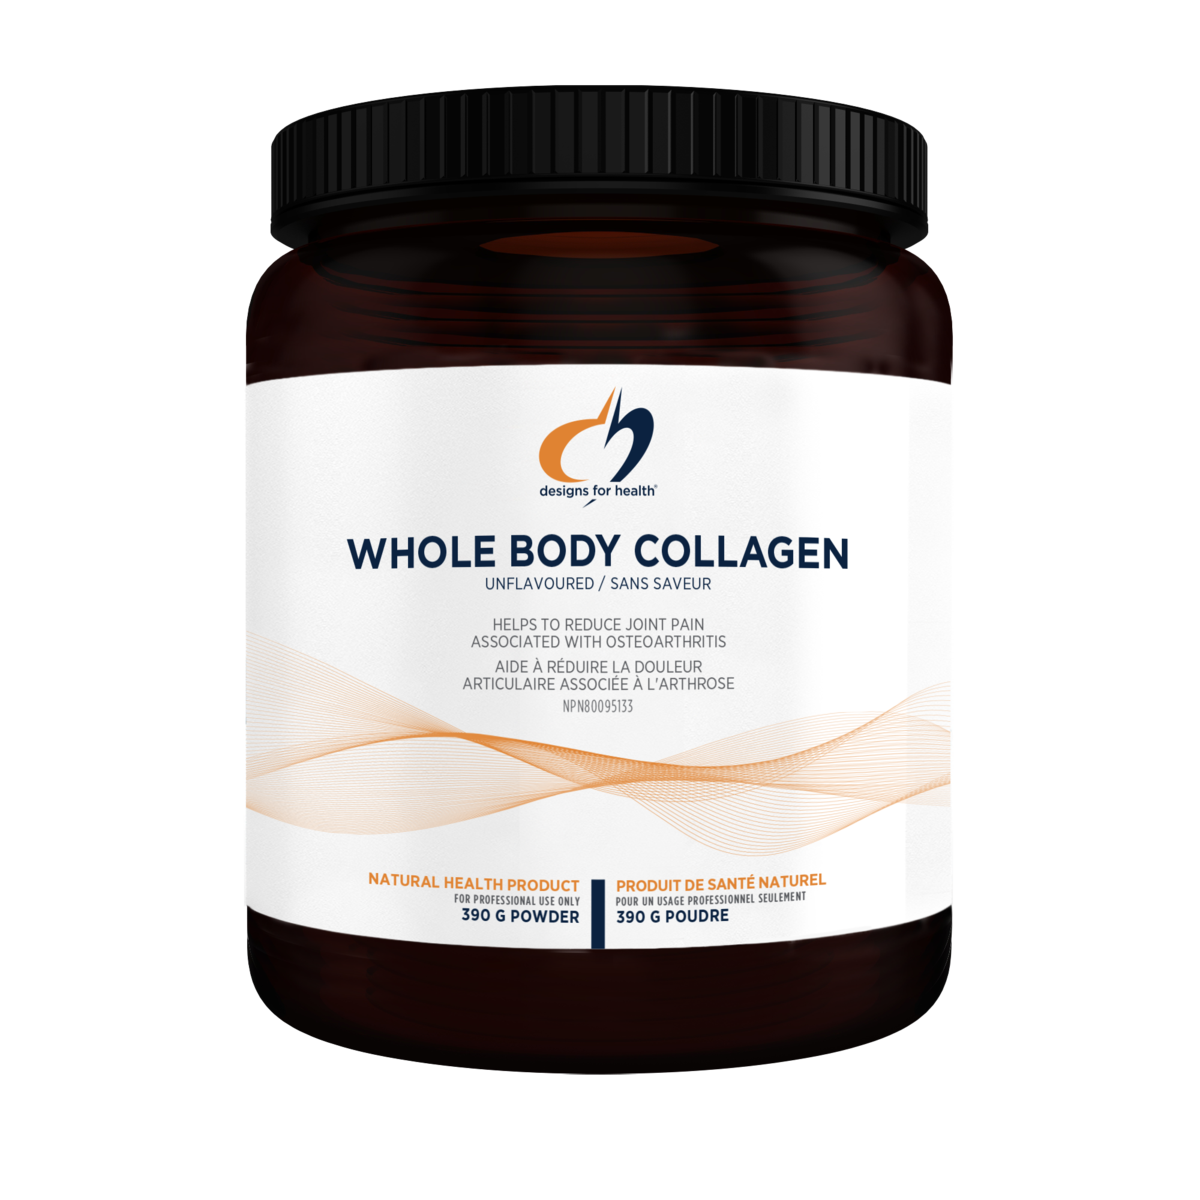 Whole Body Collagen Designs for Health